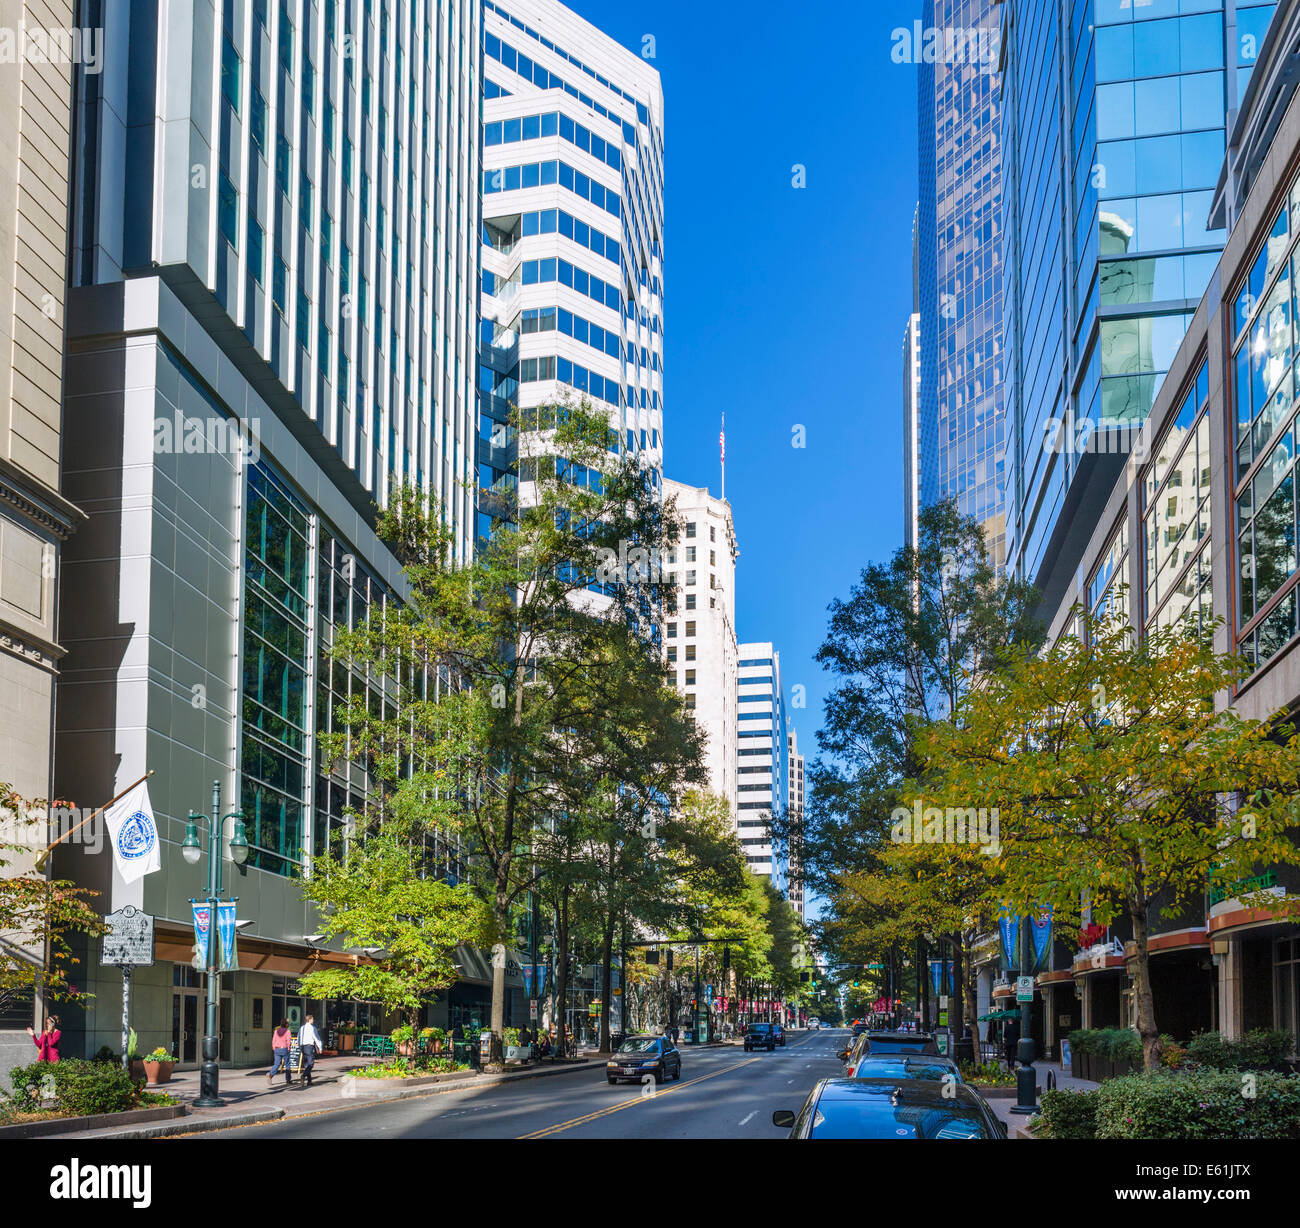 Office buildings on North Tryon Street in uptown Charlotte, North Carolina, USA - Stock Image